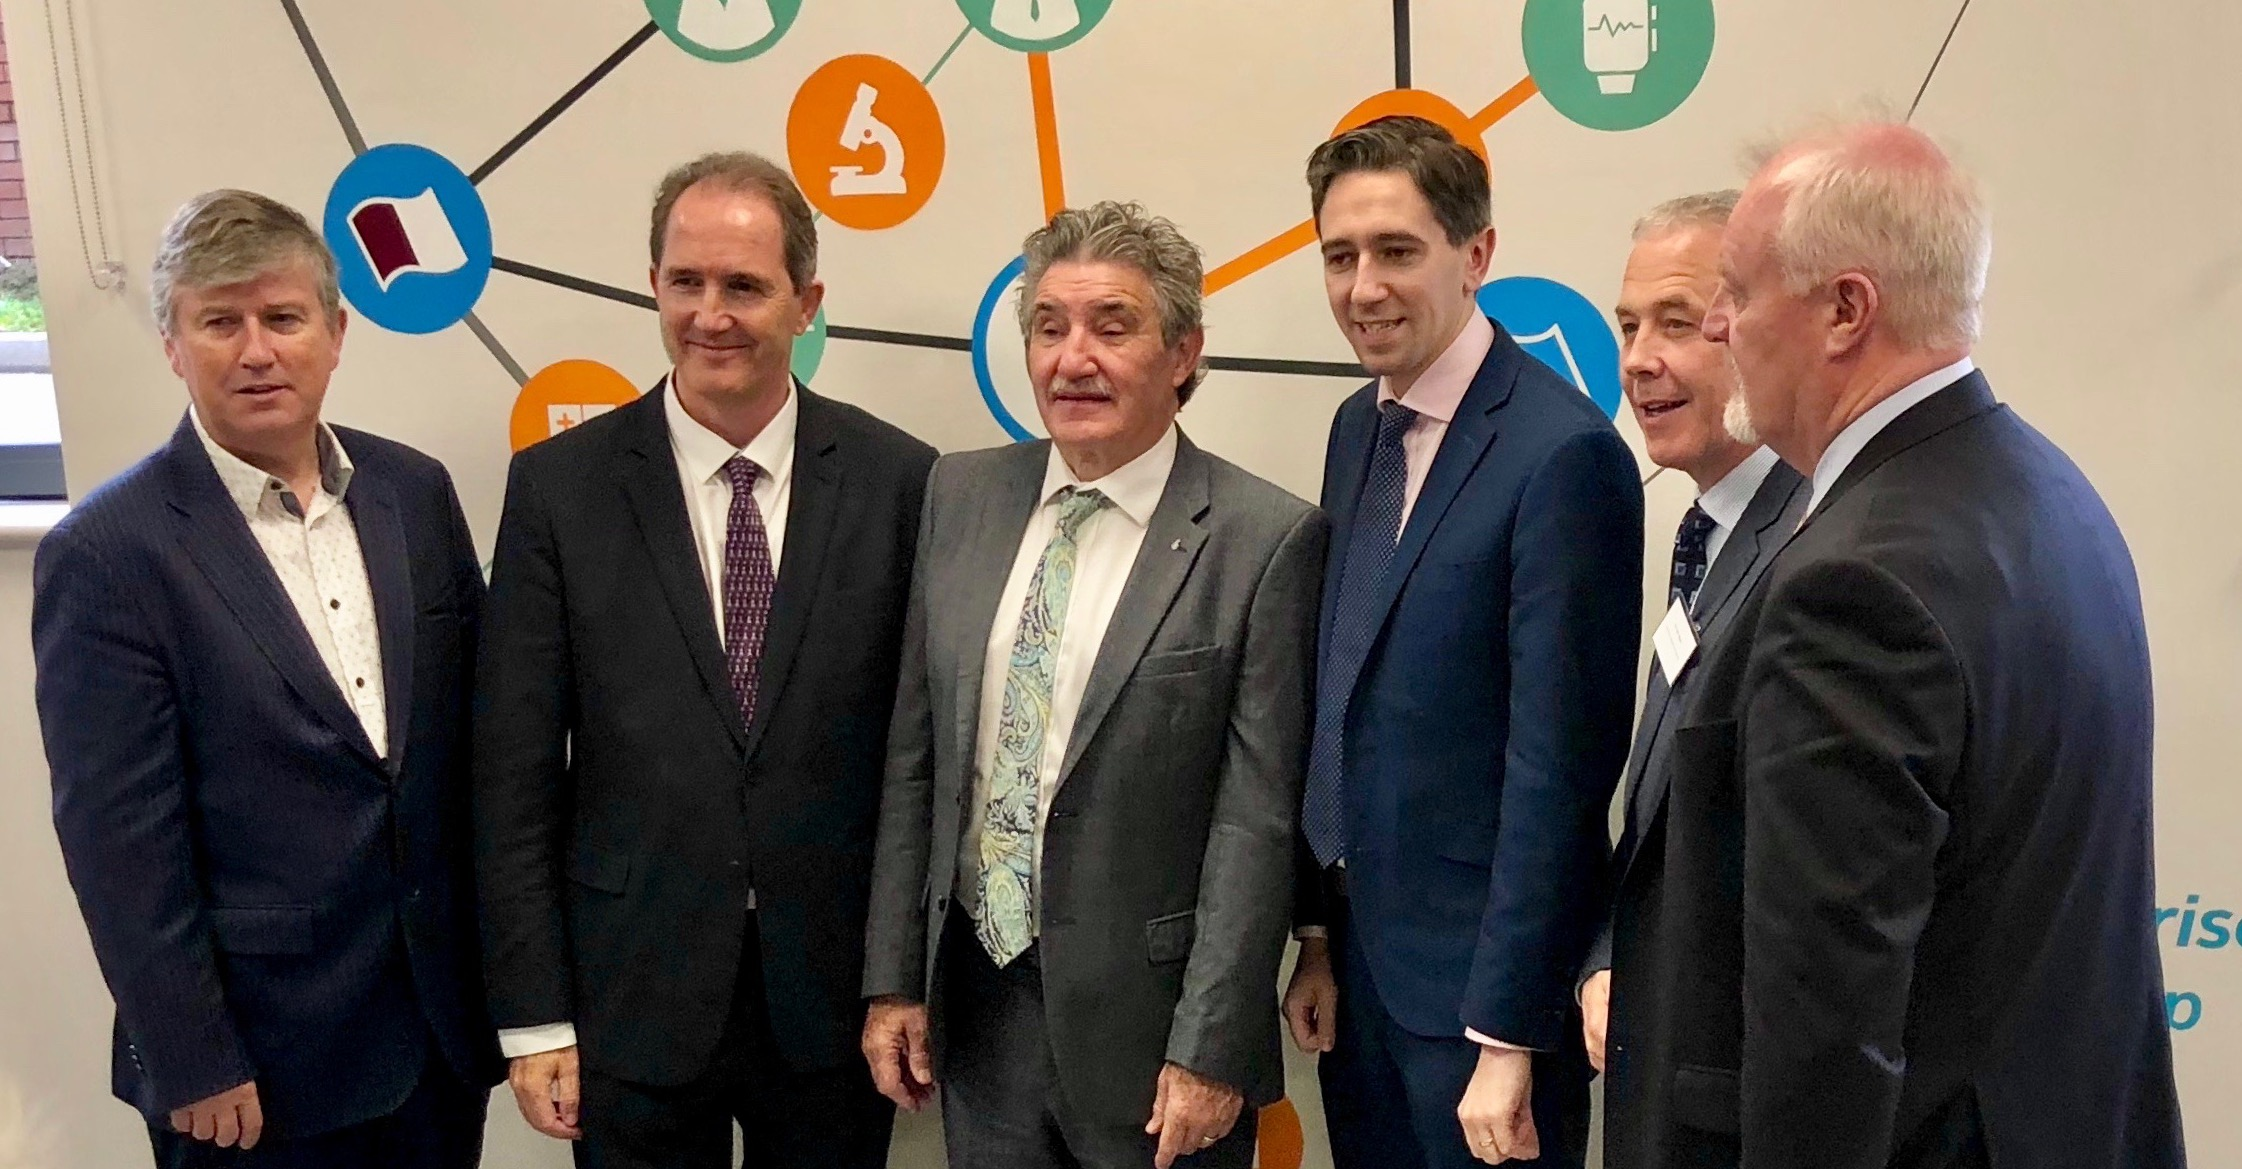 Professor Seamas Donnelly, Mr. Dave Shanahan, Minister John Halligan, Minister Simon Harris, Professor John Higgins and Mr. Colman Casey